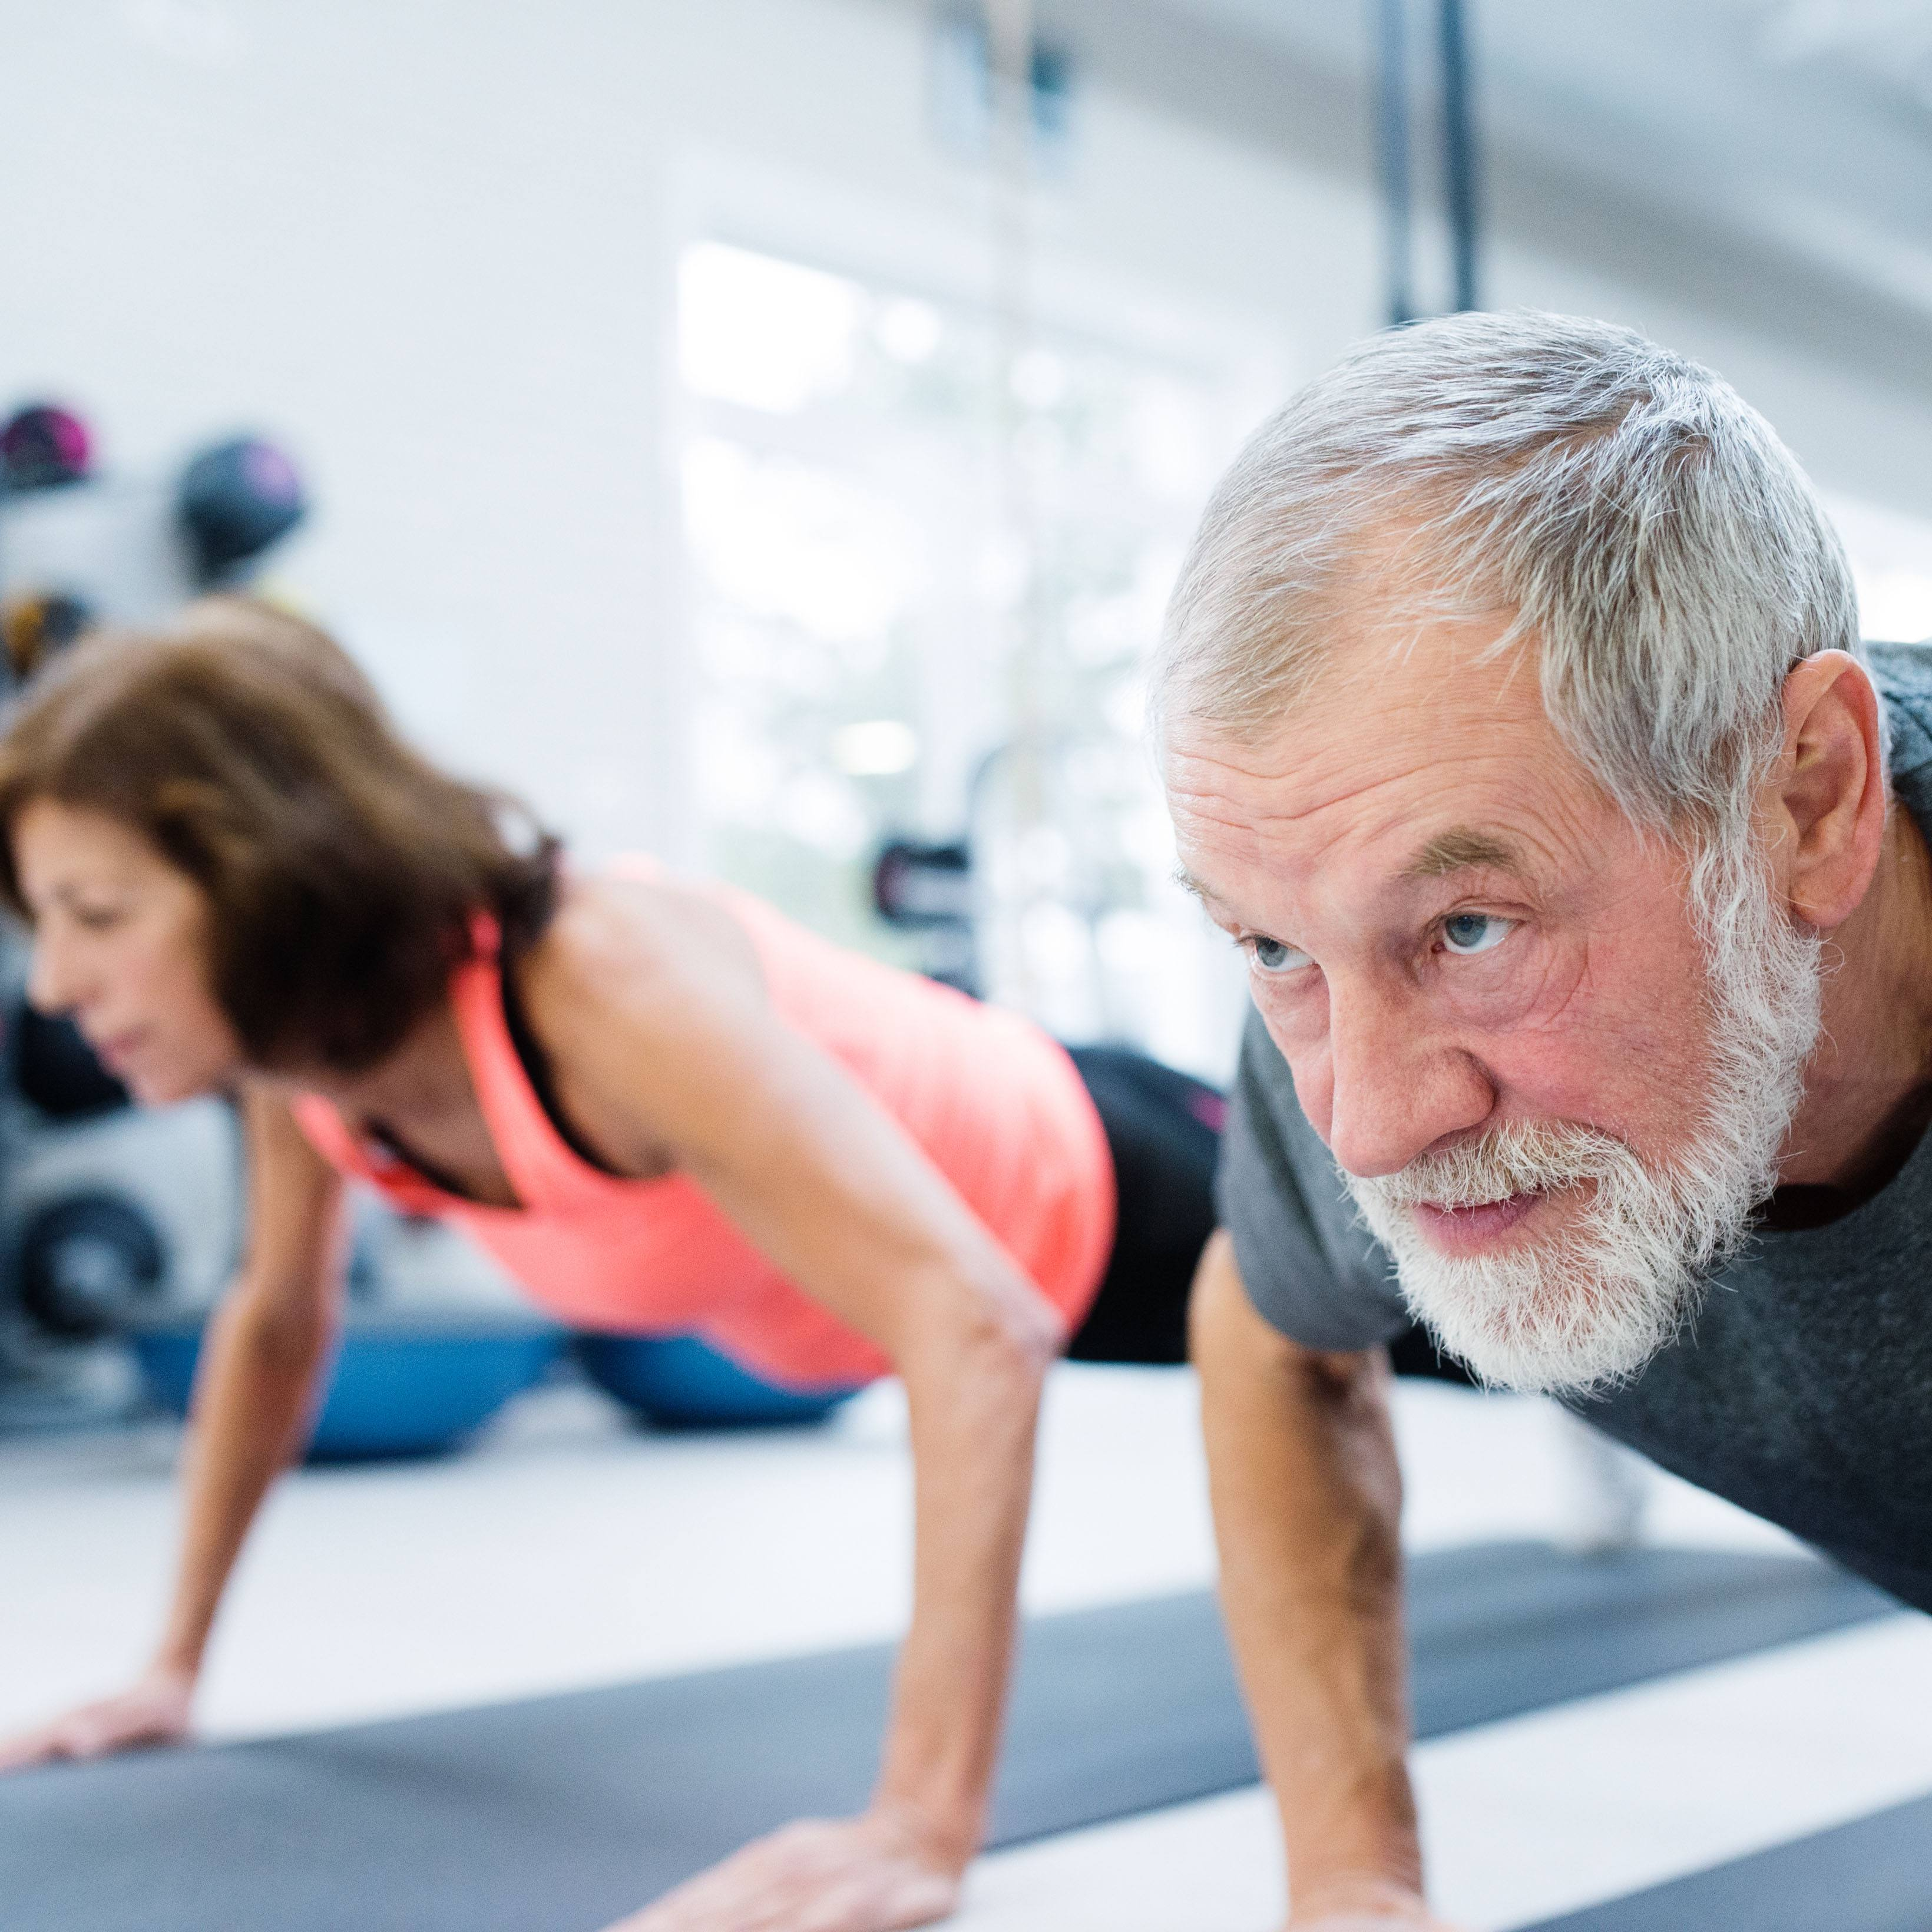 an older couple working out together in a gym, doing push-ups